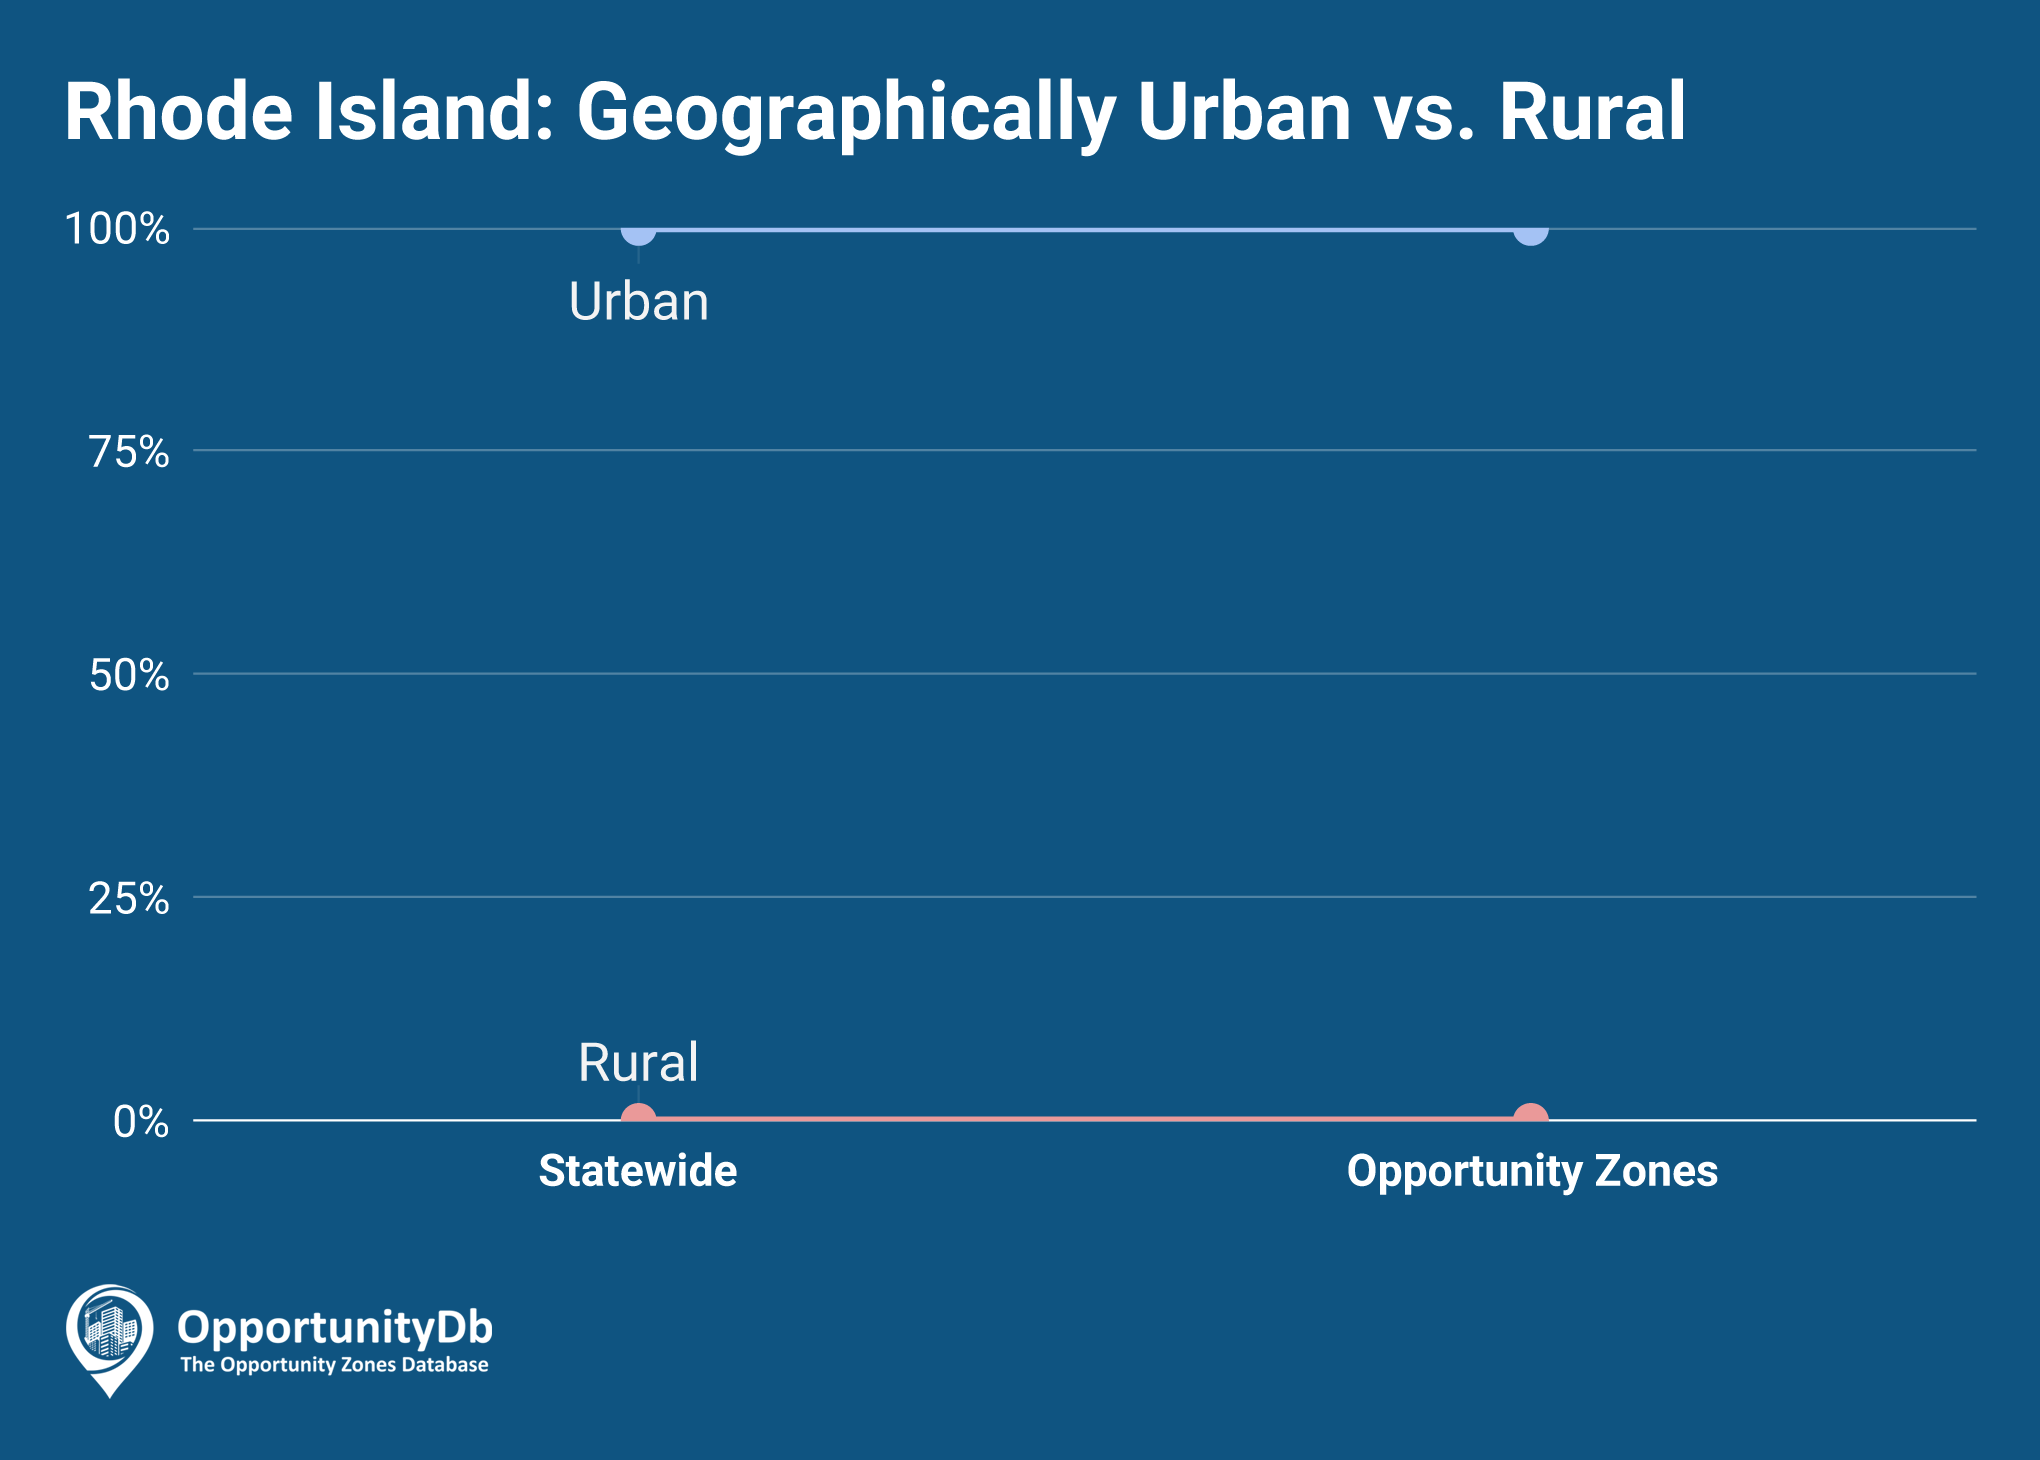 Urban vs. Rural in Rhode Island Opportunity Zones